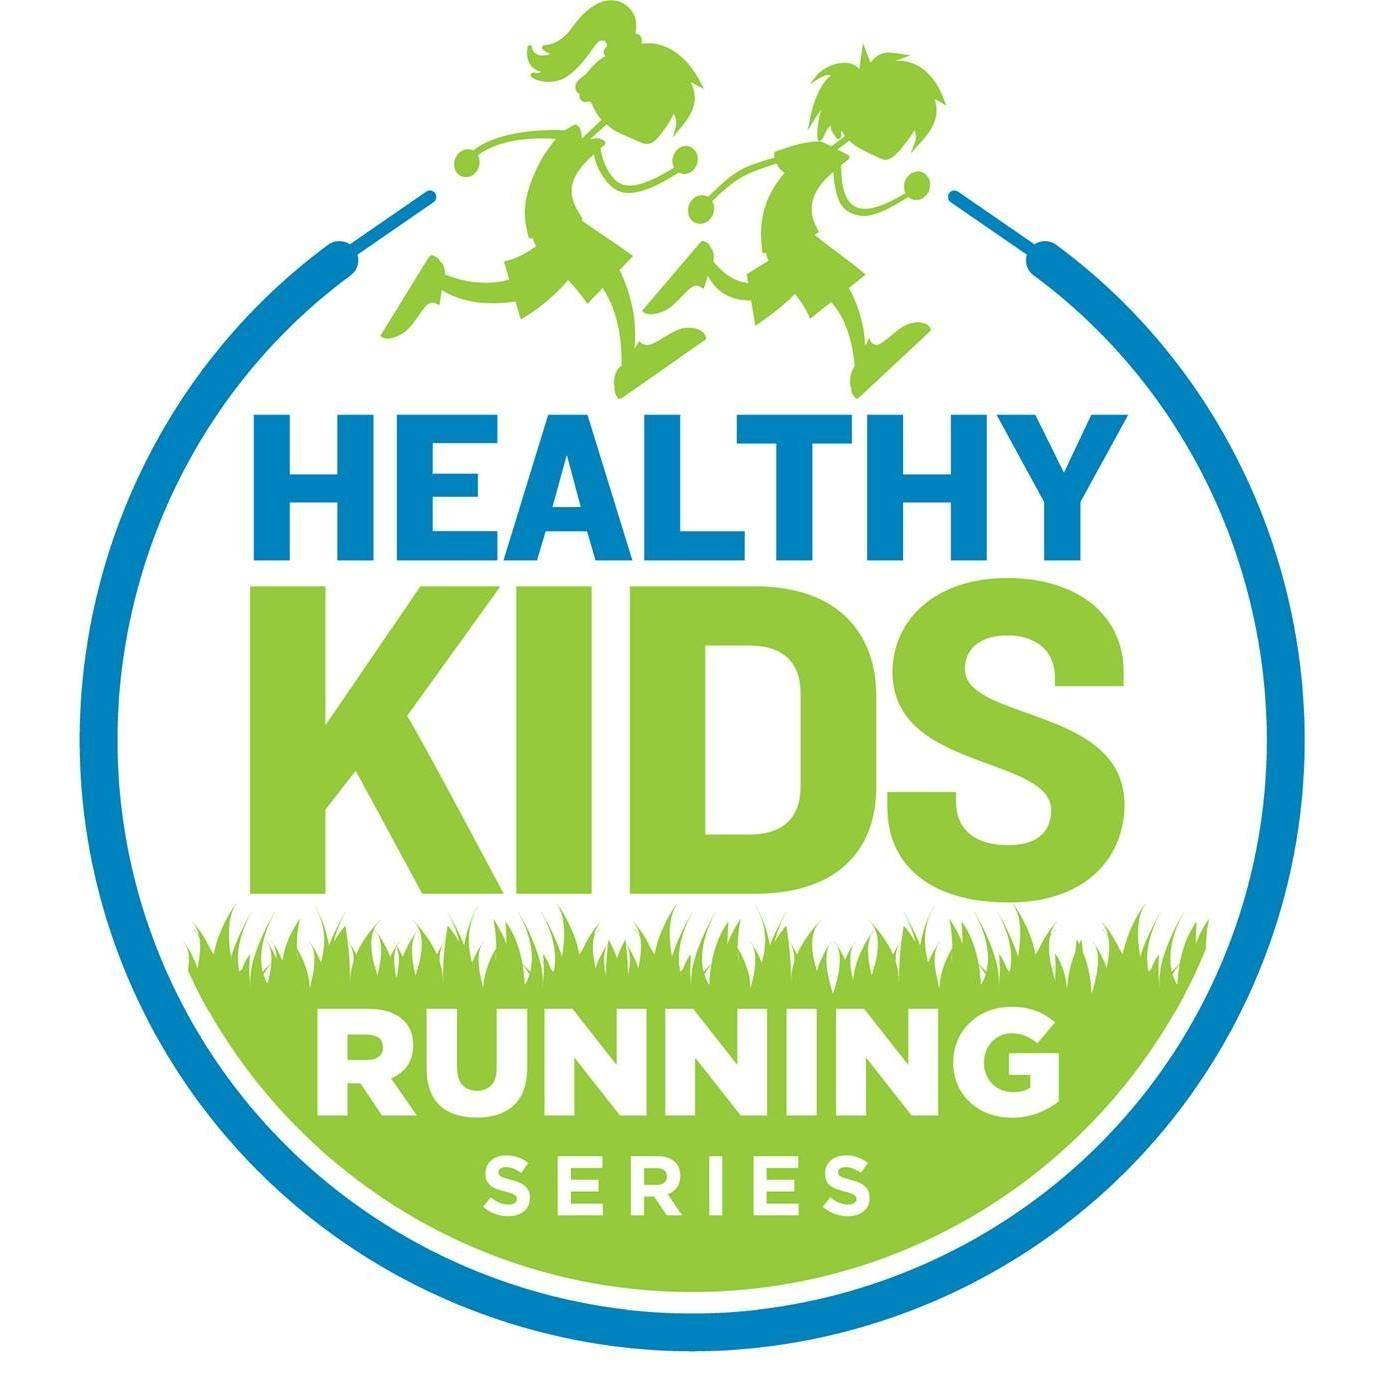 Healthy Kids Running Series Fall \u002D Frederick, MD - cover image